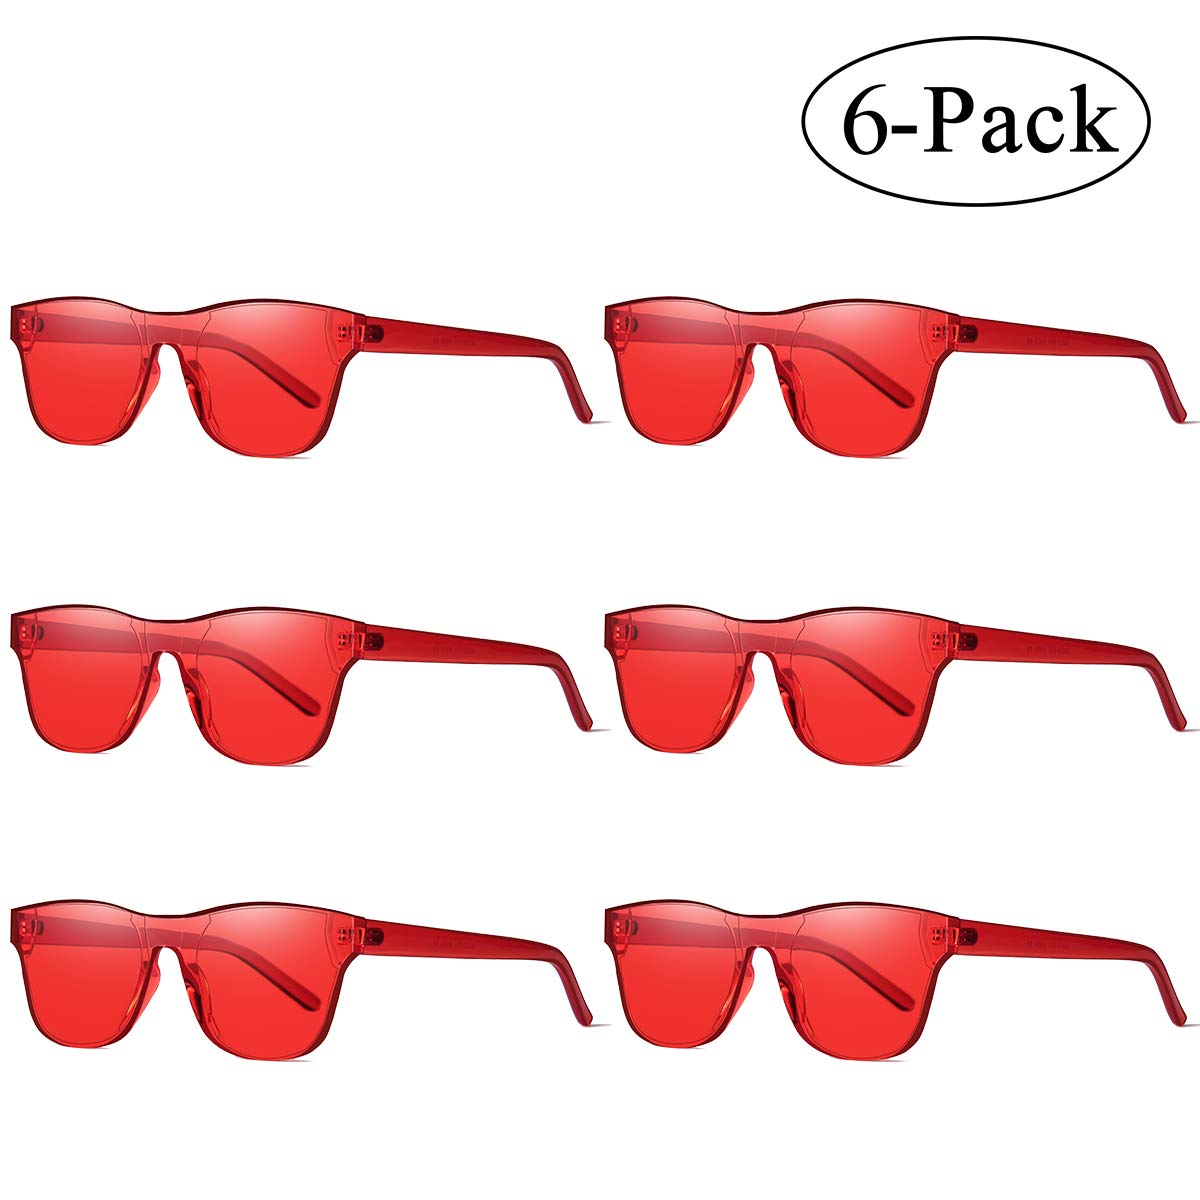 7c90df97212 Aooffiv one piece rimless tinted sunglasses transparent candy colors glasses  red pack clothing jpg 1200x1200 Transparent